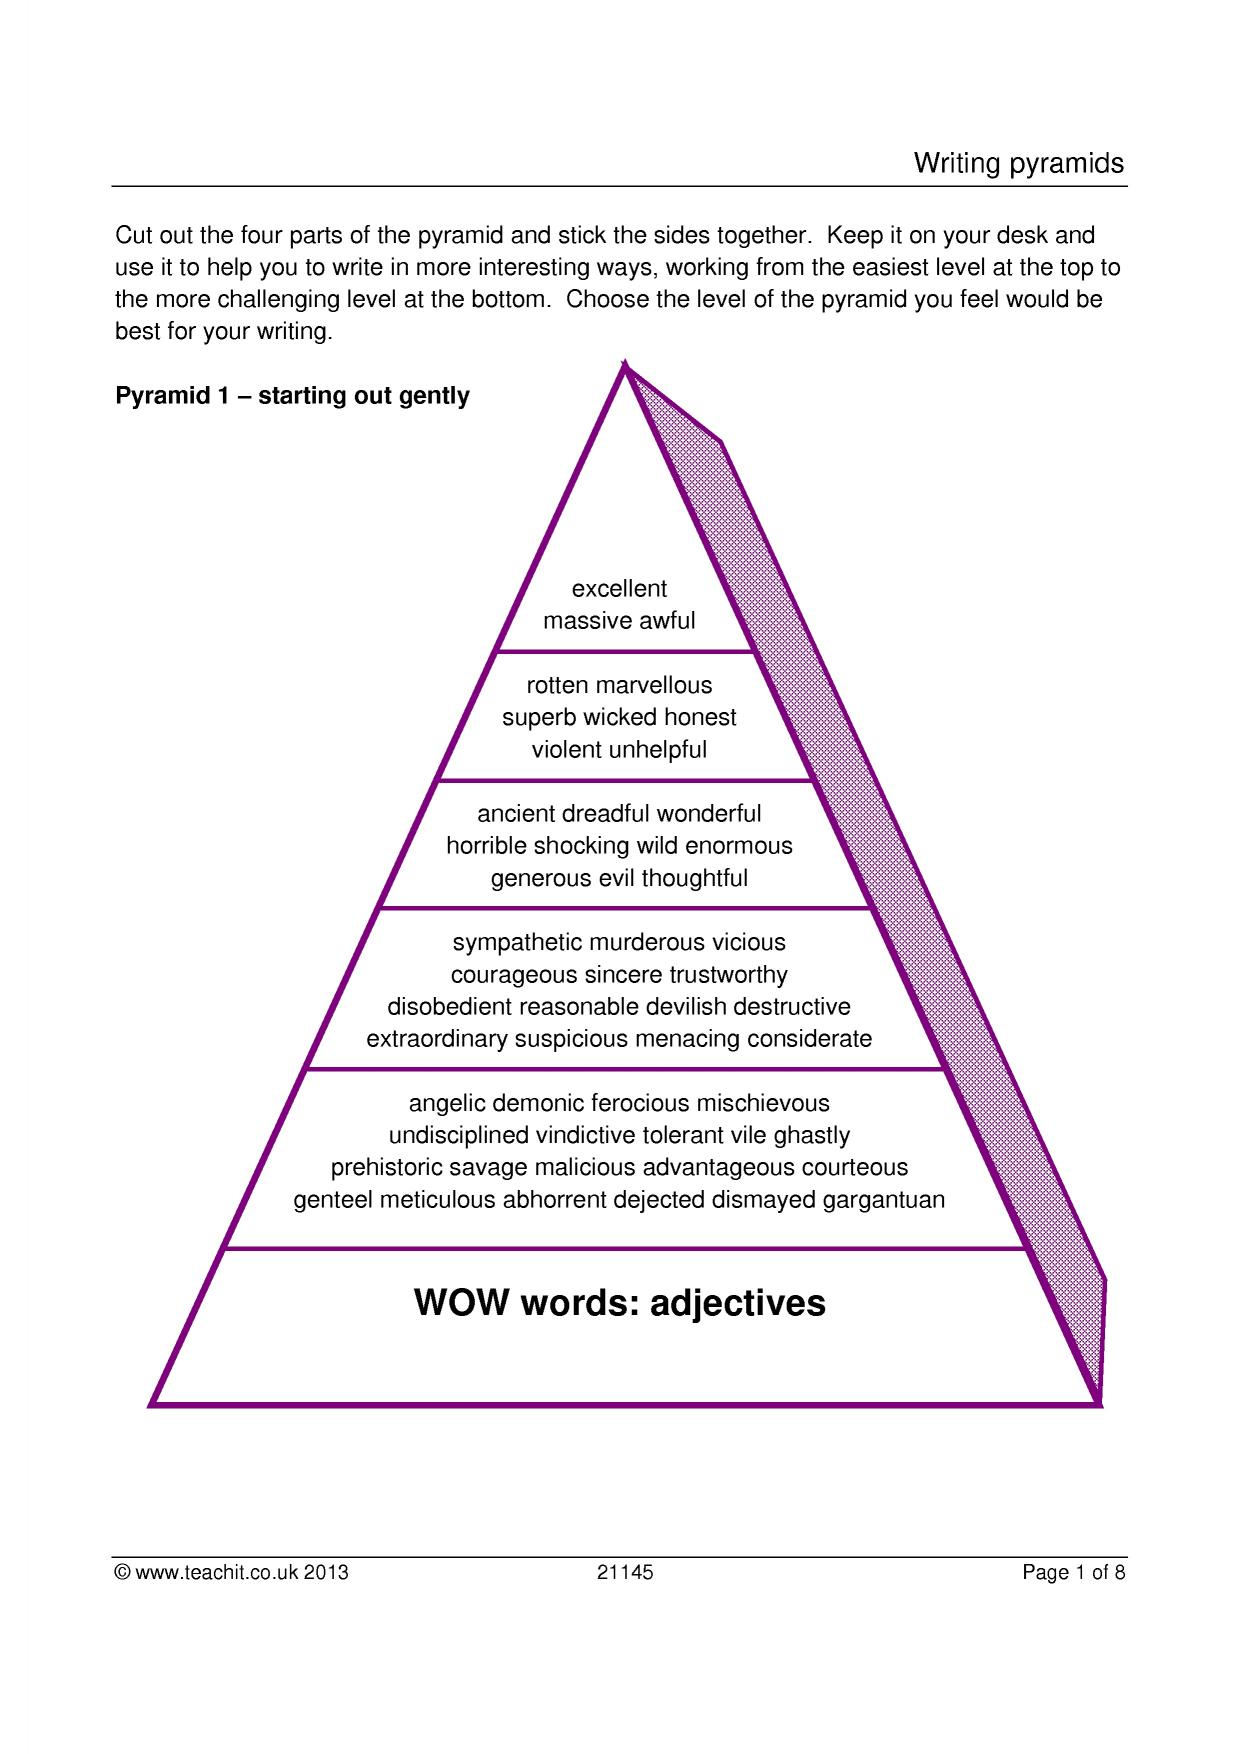 writing pyramids creative writing ks narrative writing writing pyramids creative writing ks4 narrative writing home page